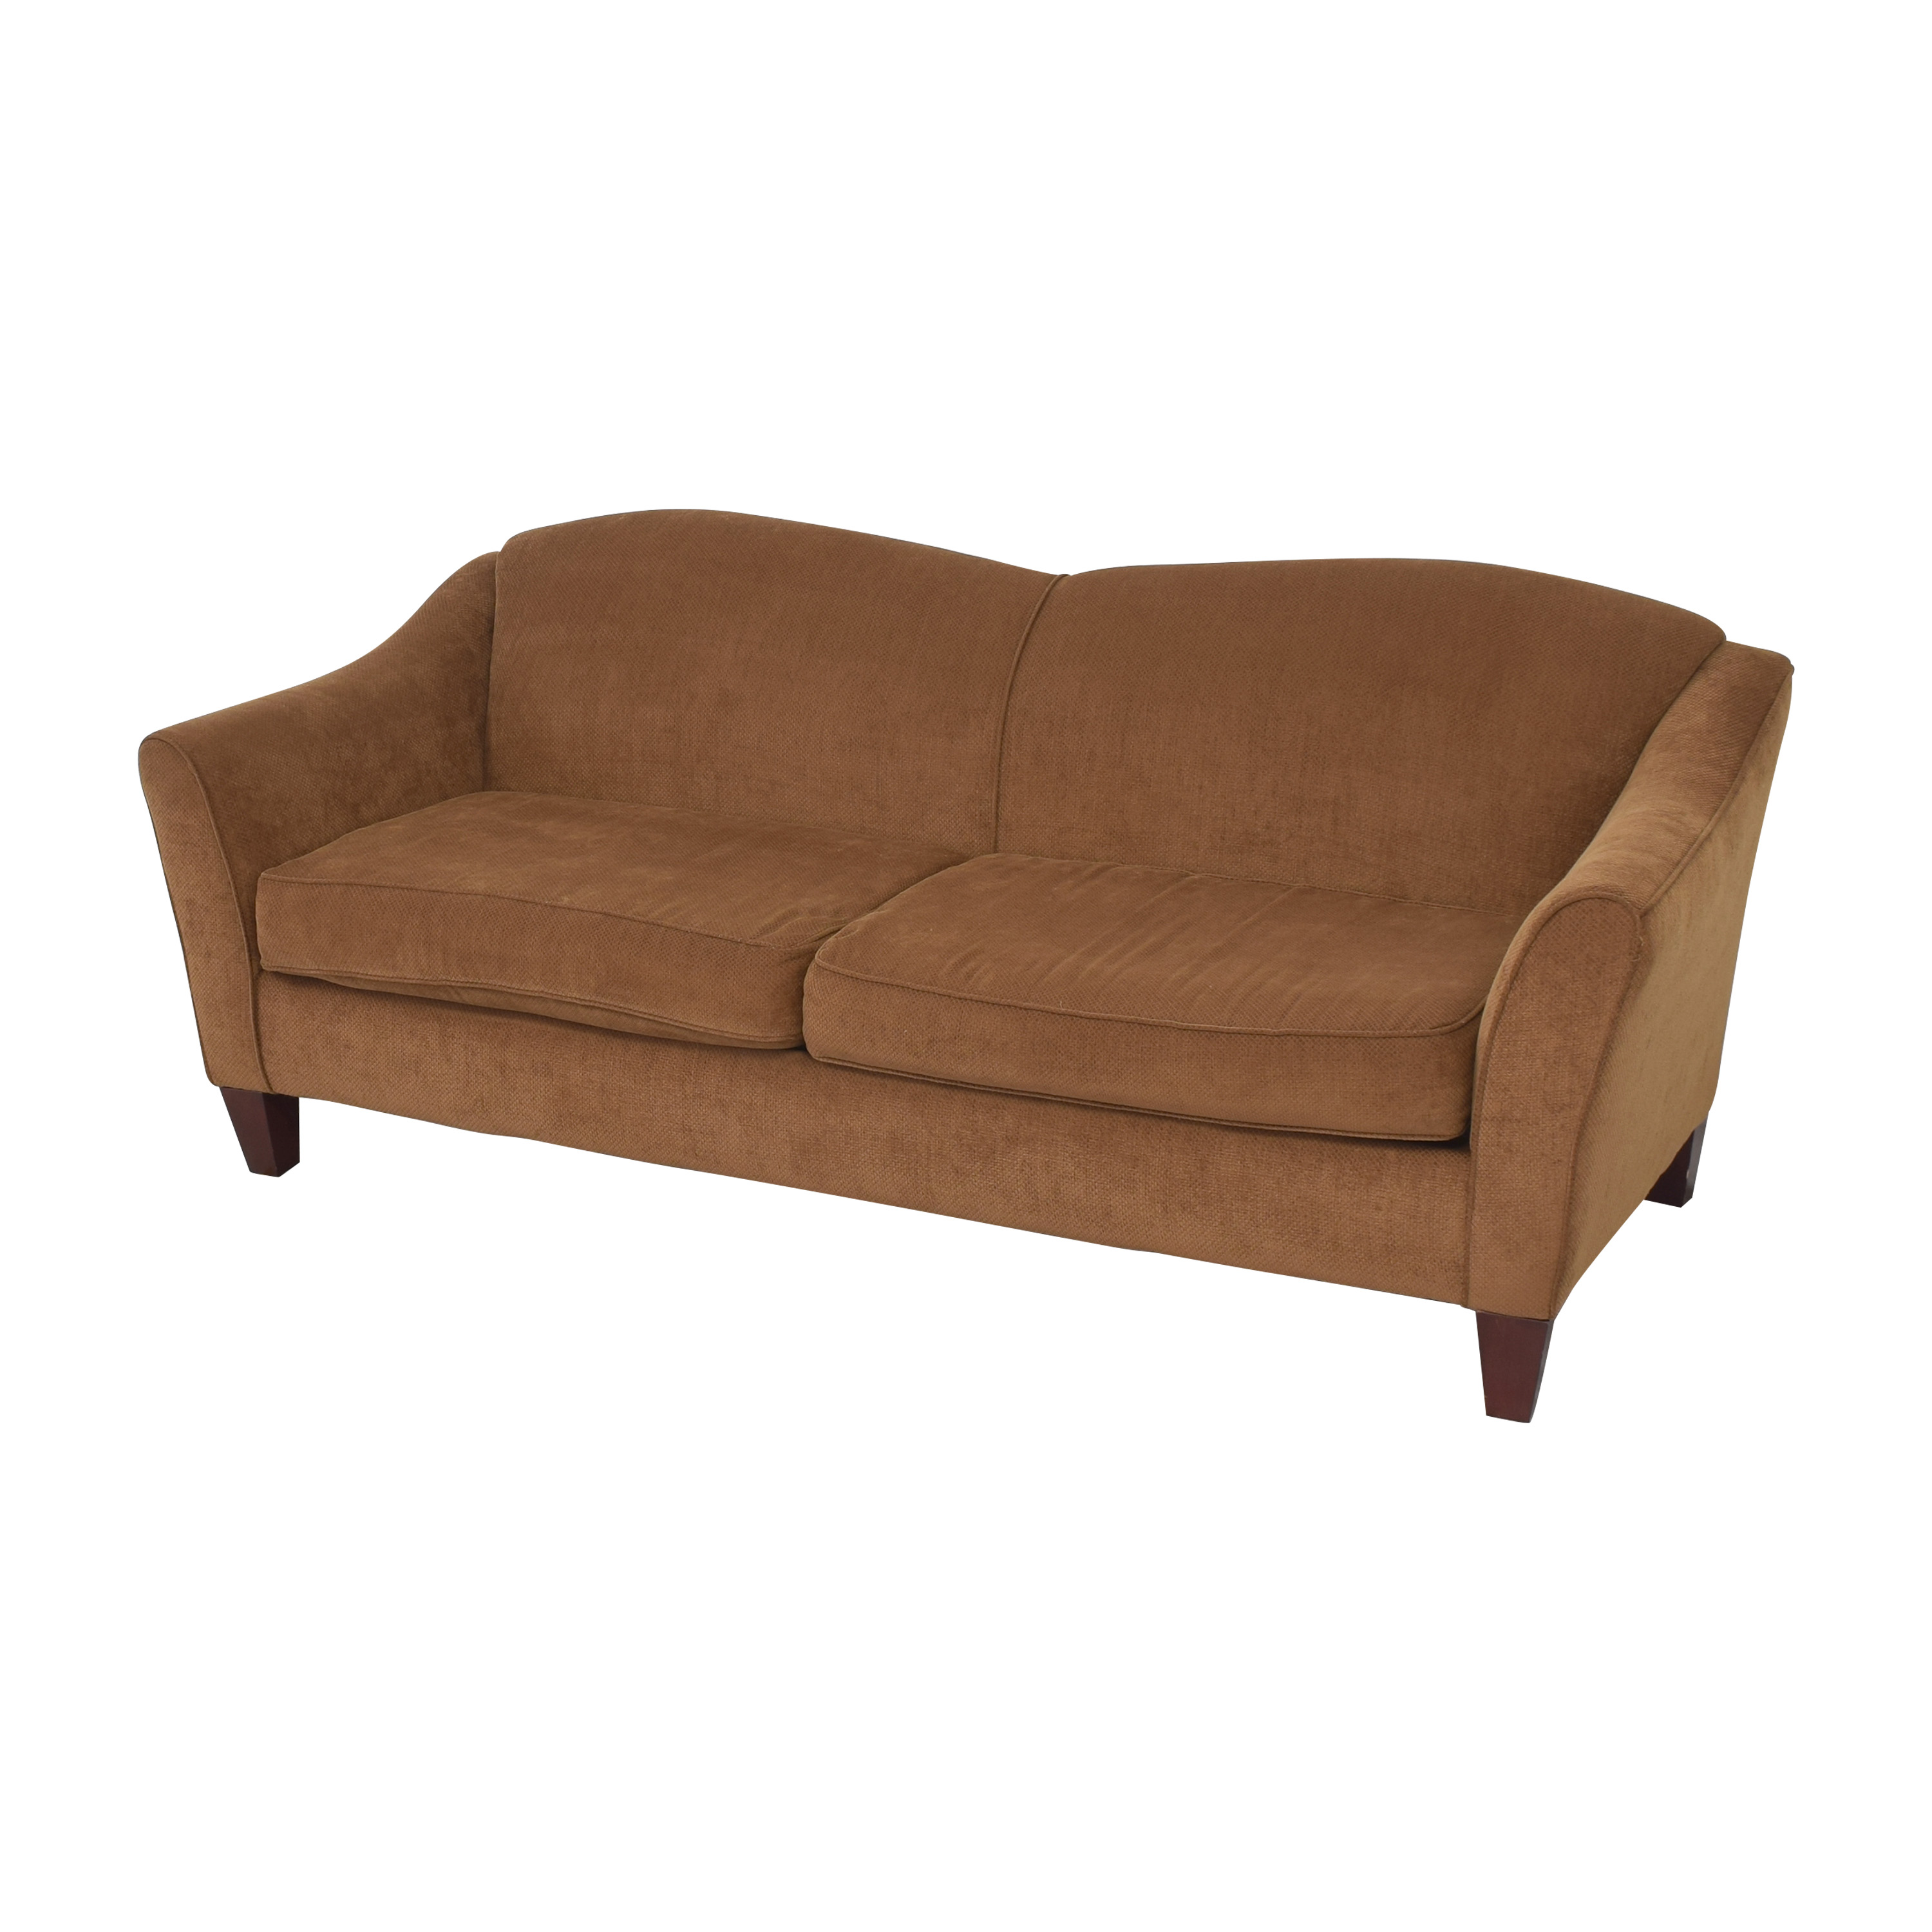 Klaussner Klaussner Two Cushion Sofa coupon